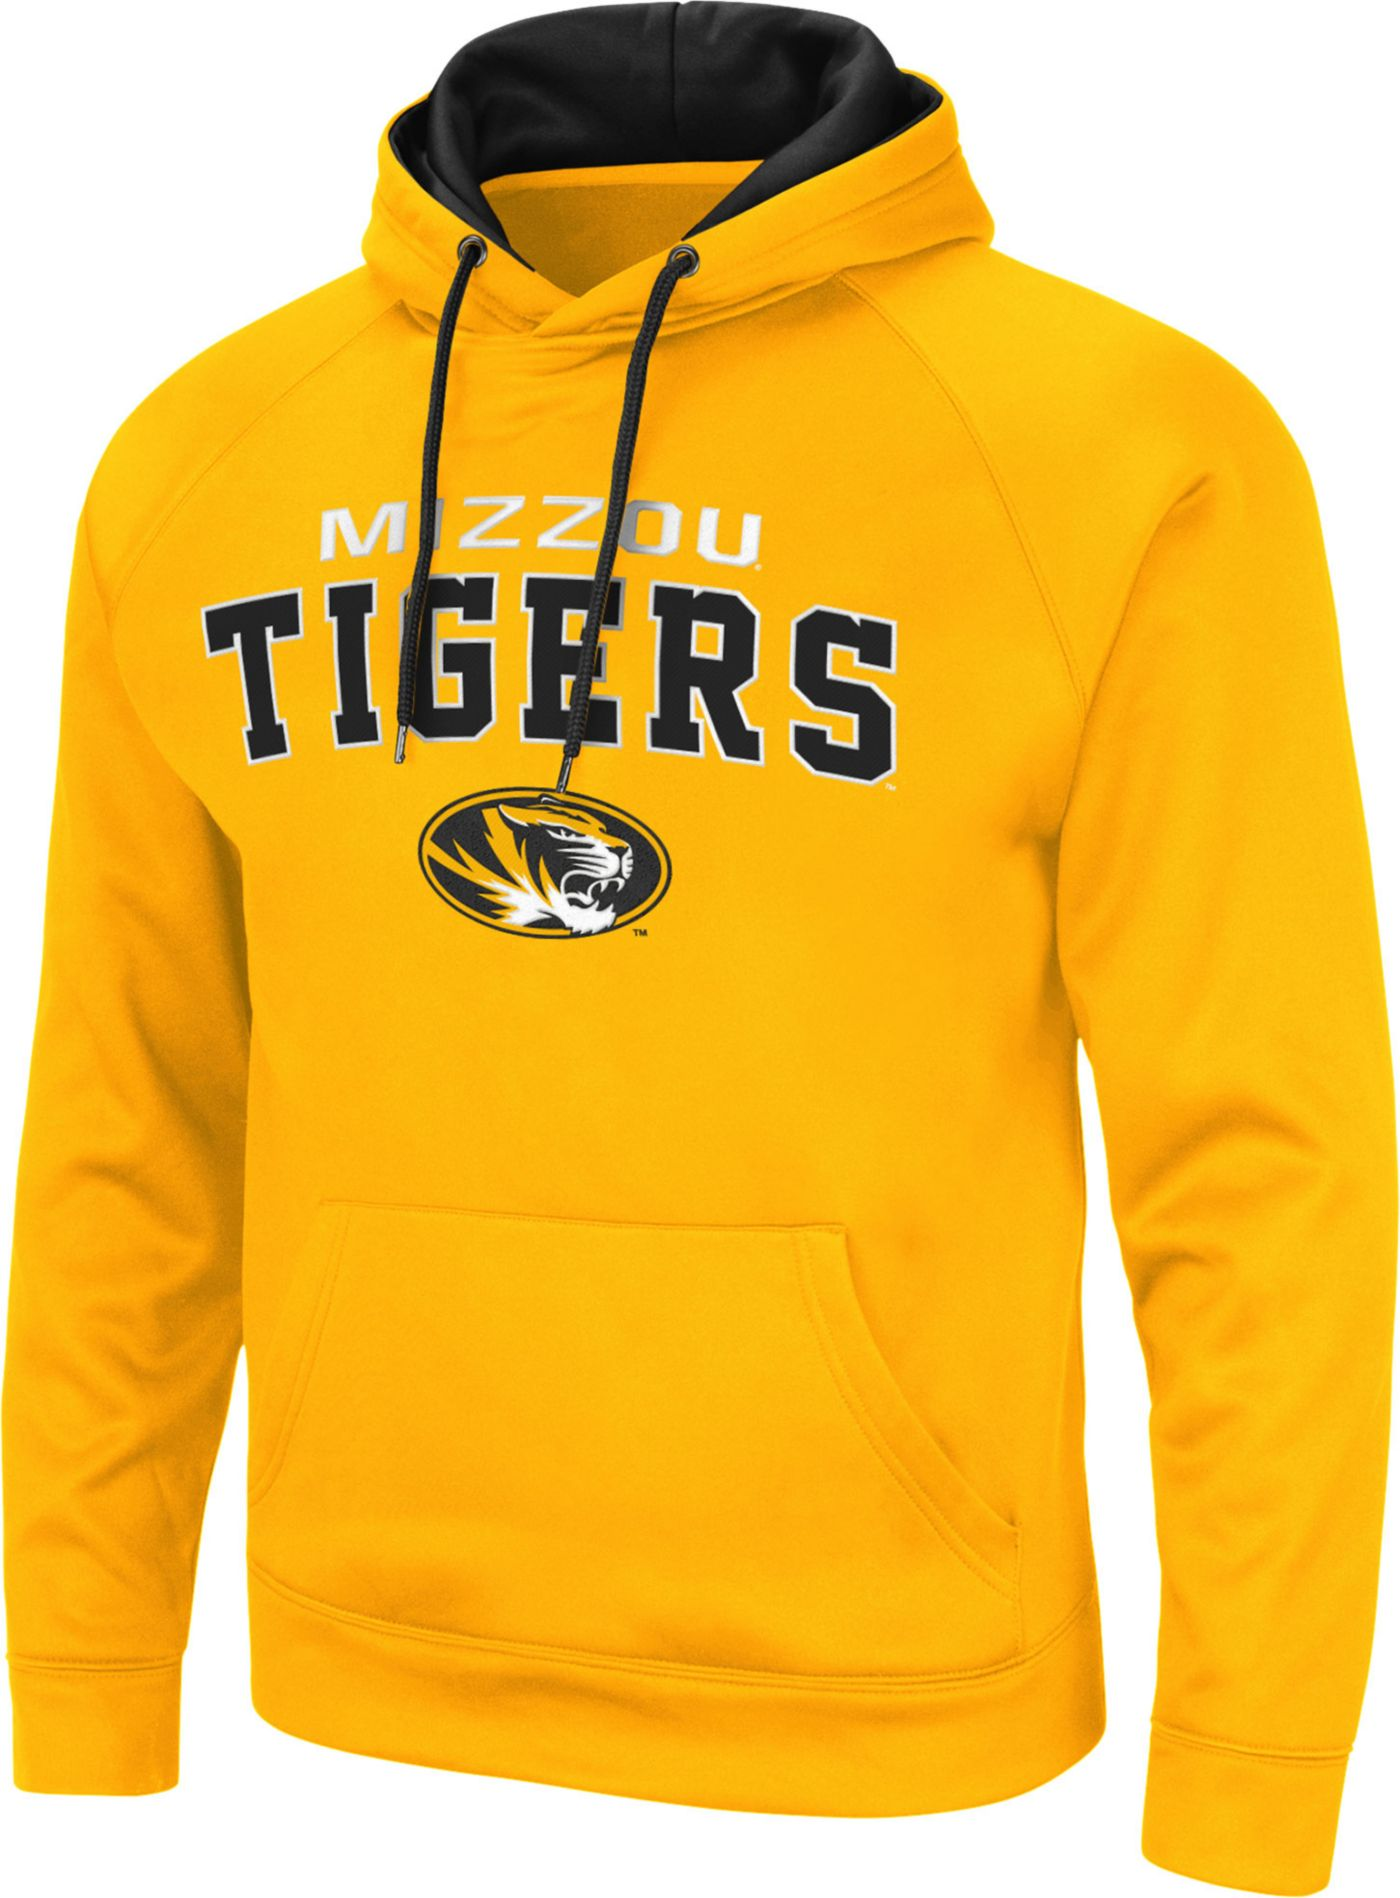 Colosseum Men's Missouri Tigers Gold Pullover Hoodie